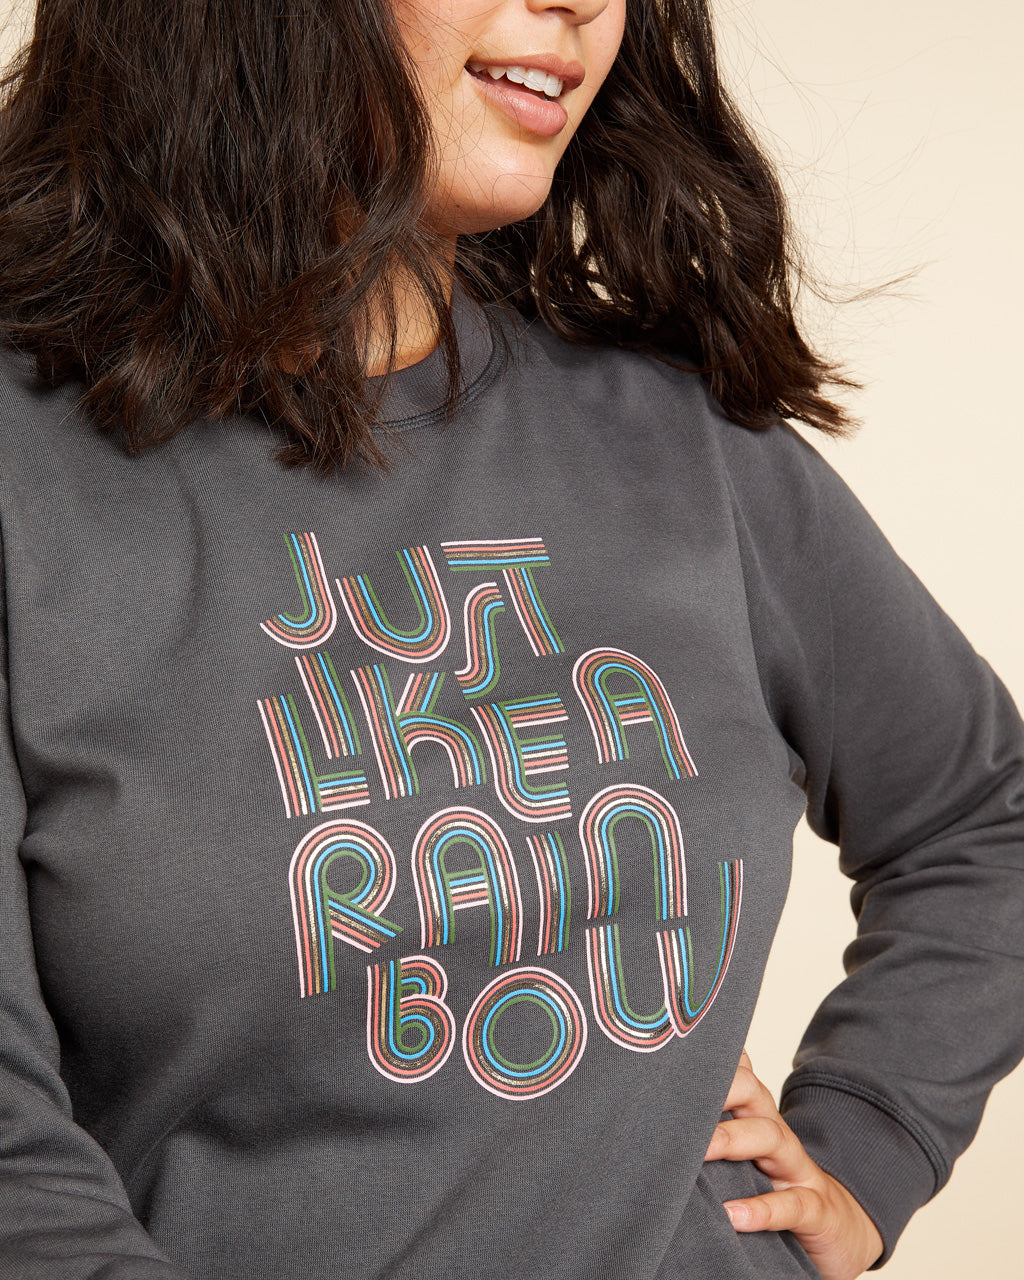 close up image of brunette model shown wearing grey sweatshirt with the words just like a rainbow